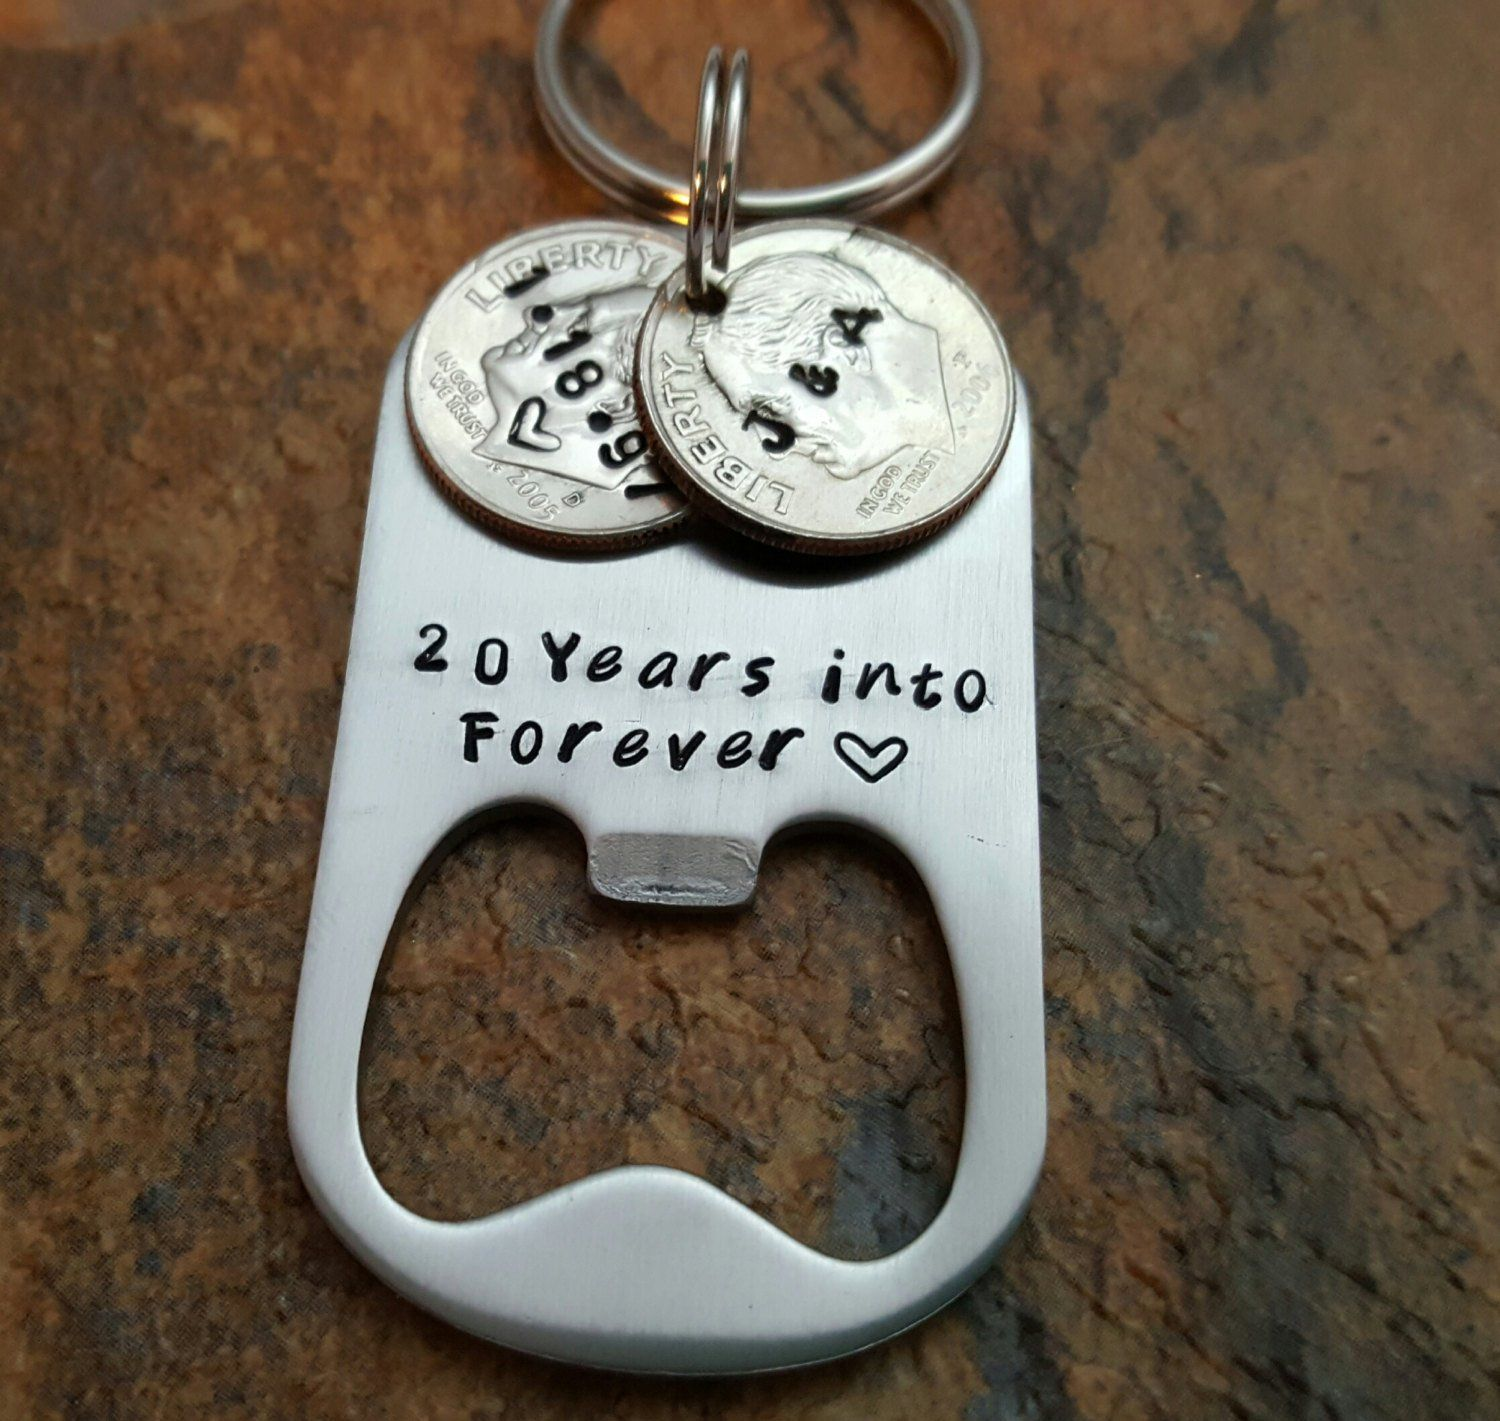 20th anniversary keychain, 20 years into forever, Husband Gift, For Men, 20 year wedding anniversary, Personalized HandStamped key ring gift #20thanniversarywedding